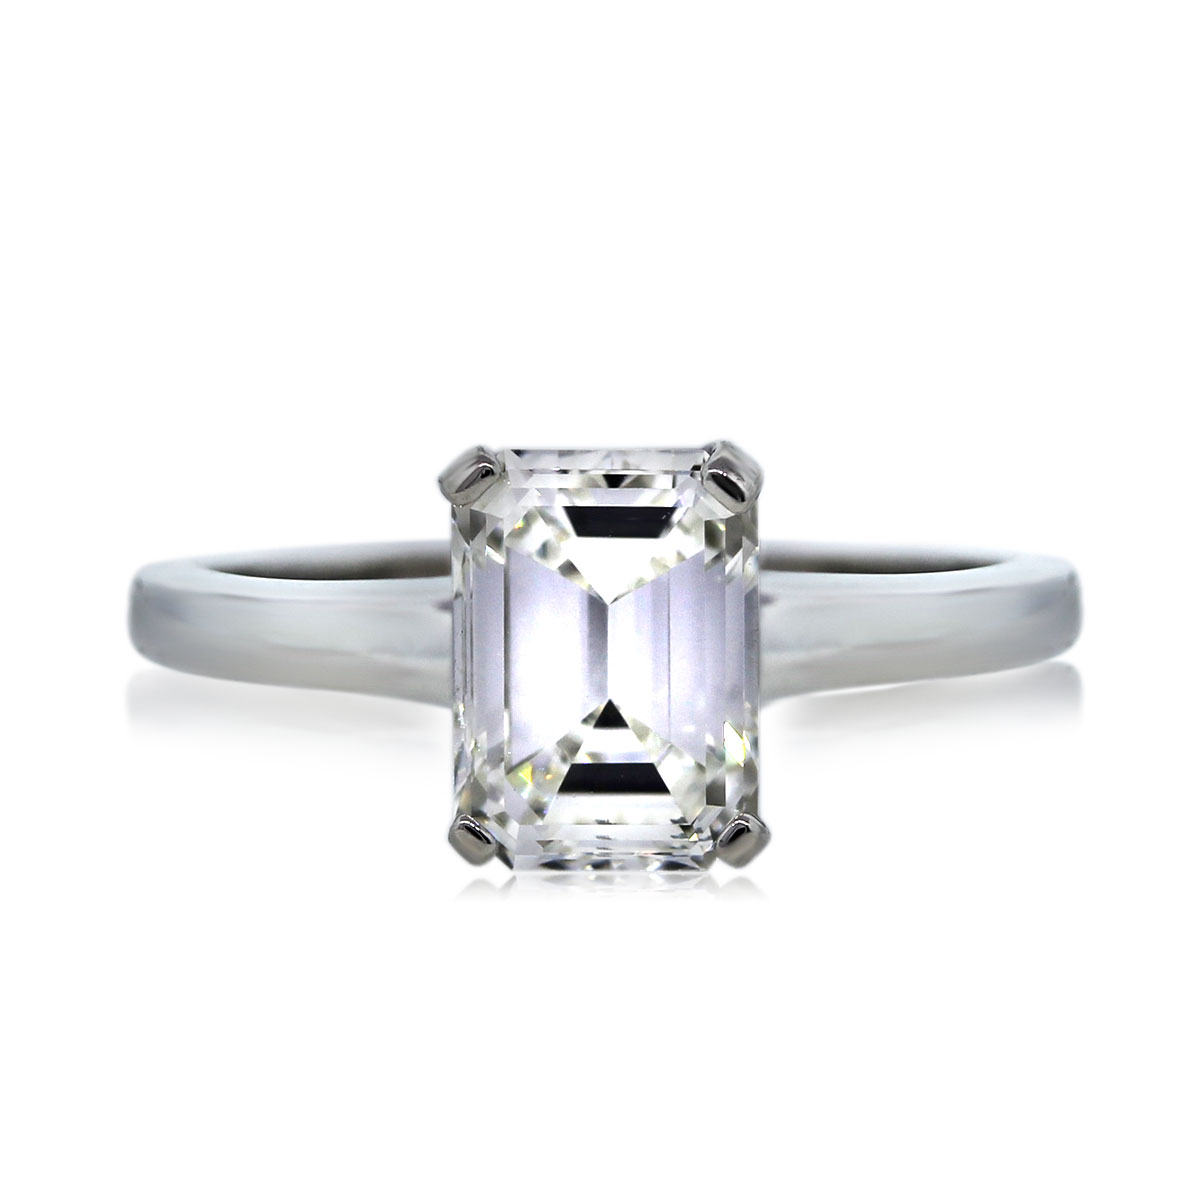 You are Viewing this Gorgeous 1.18ct Emerald Cut Engagement Ring!